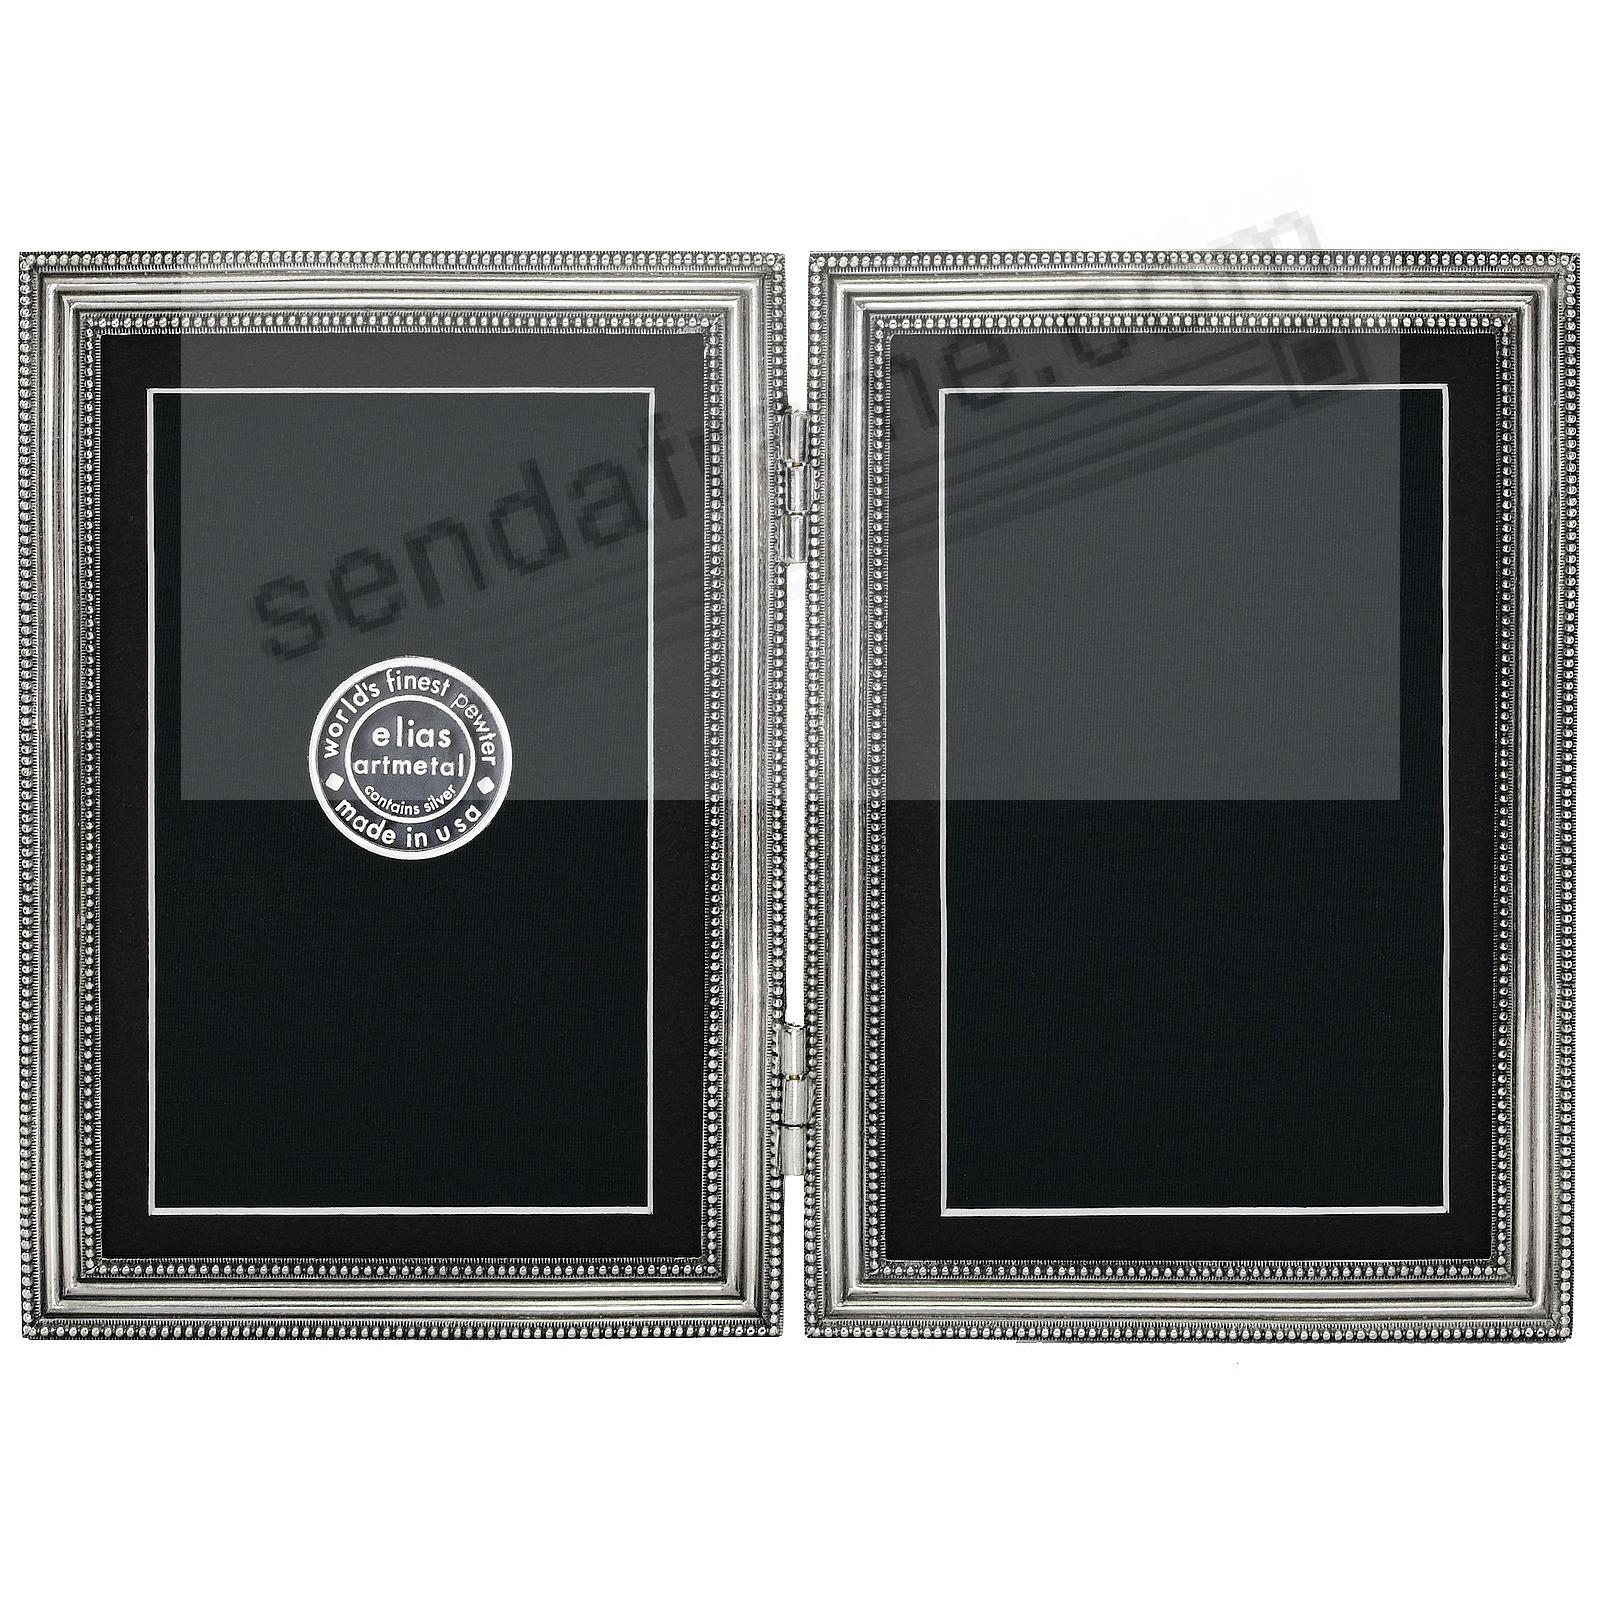 CLASSICO Fine Silvered Pewter Hinged 5x7/4x6 Double by Elias Artmetal®